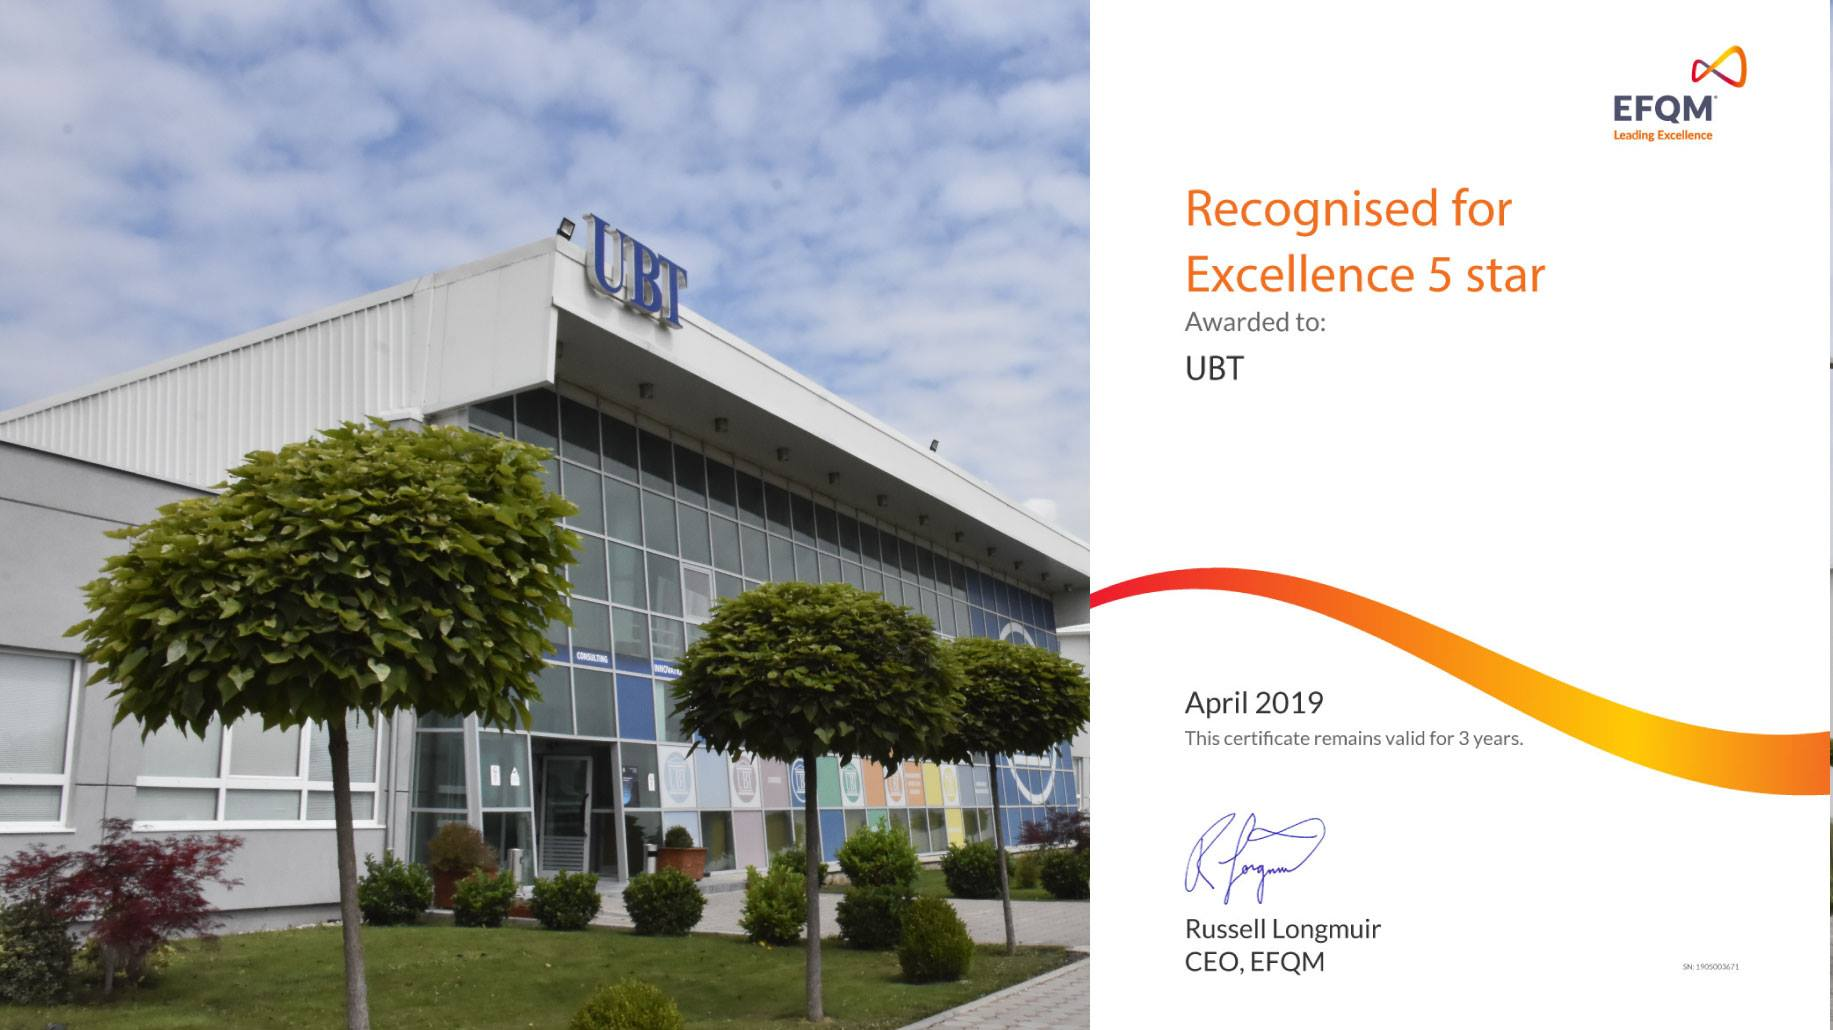 UBT is certified and awarded with the Five Star Excellence Award